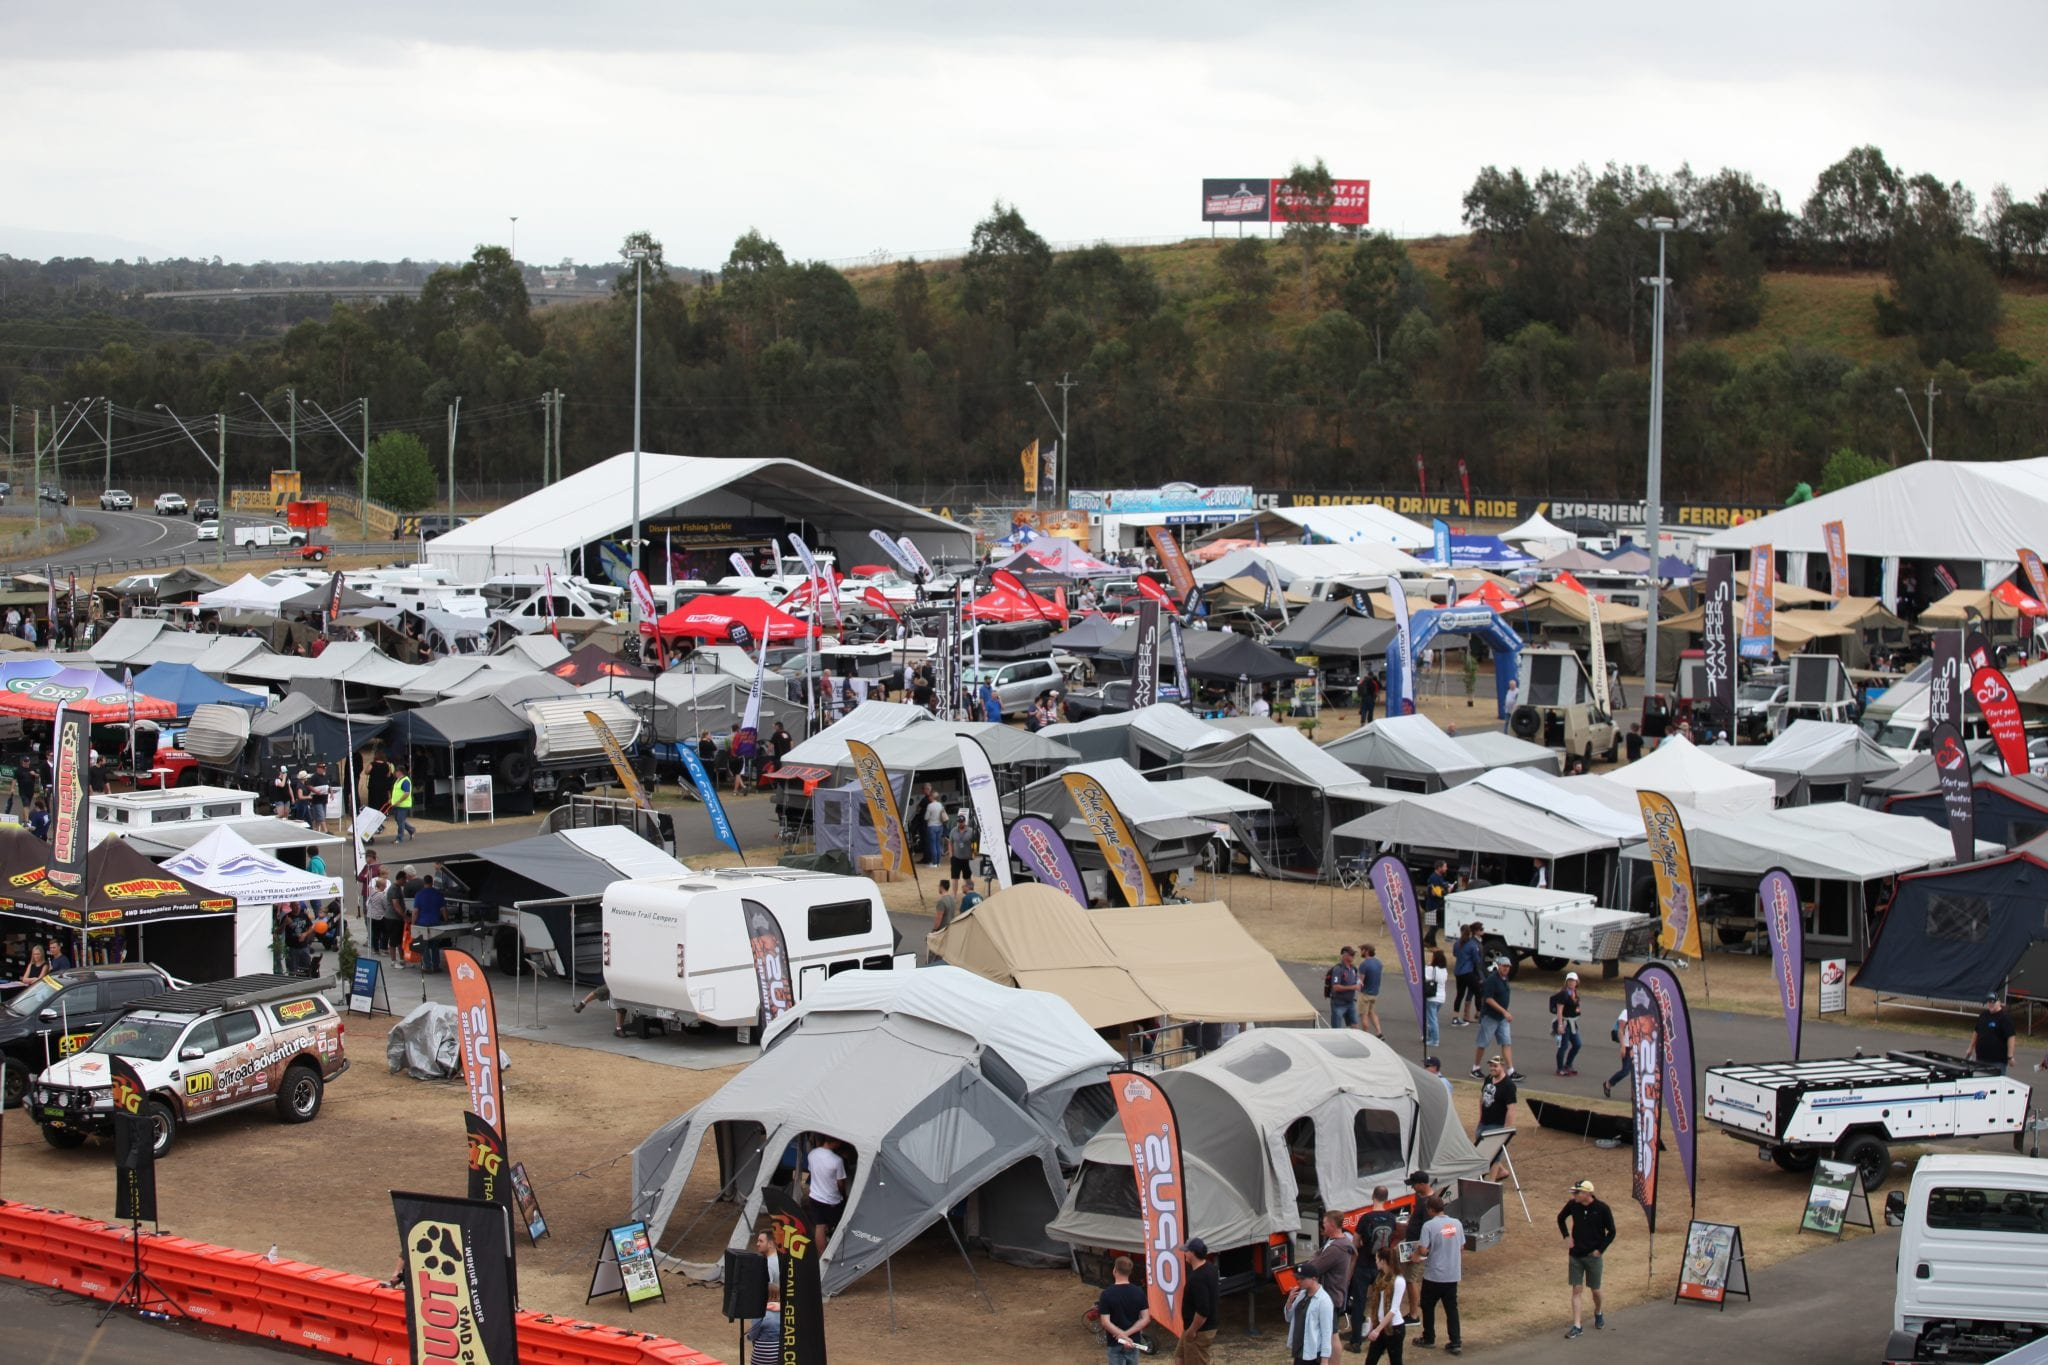 Sydney 4WD and Adventure Show is next weekend